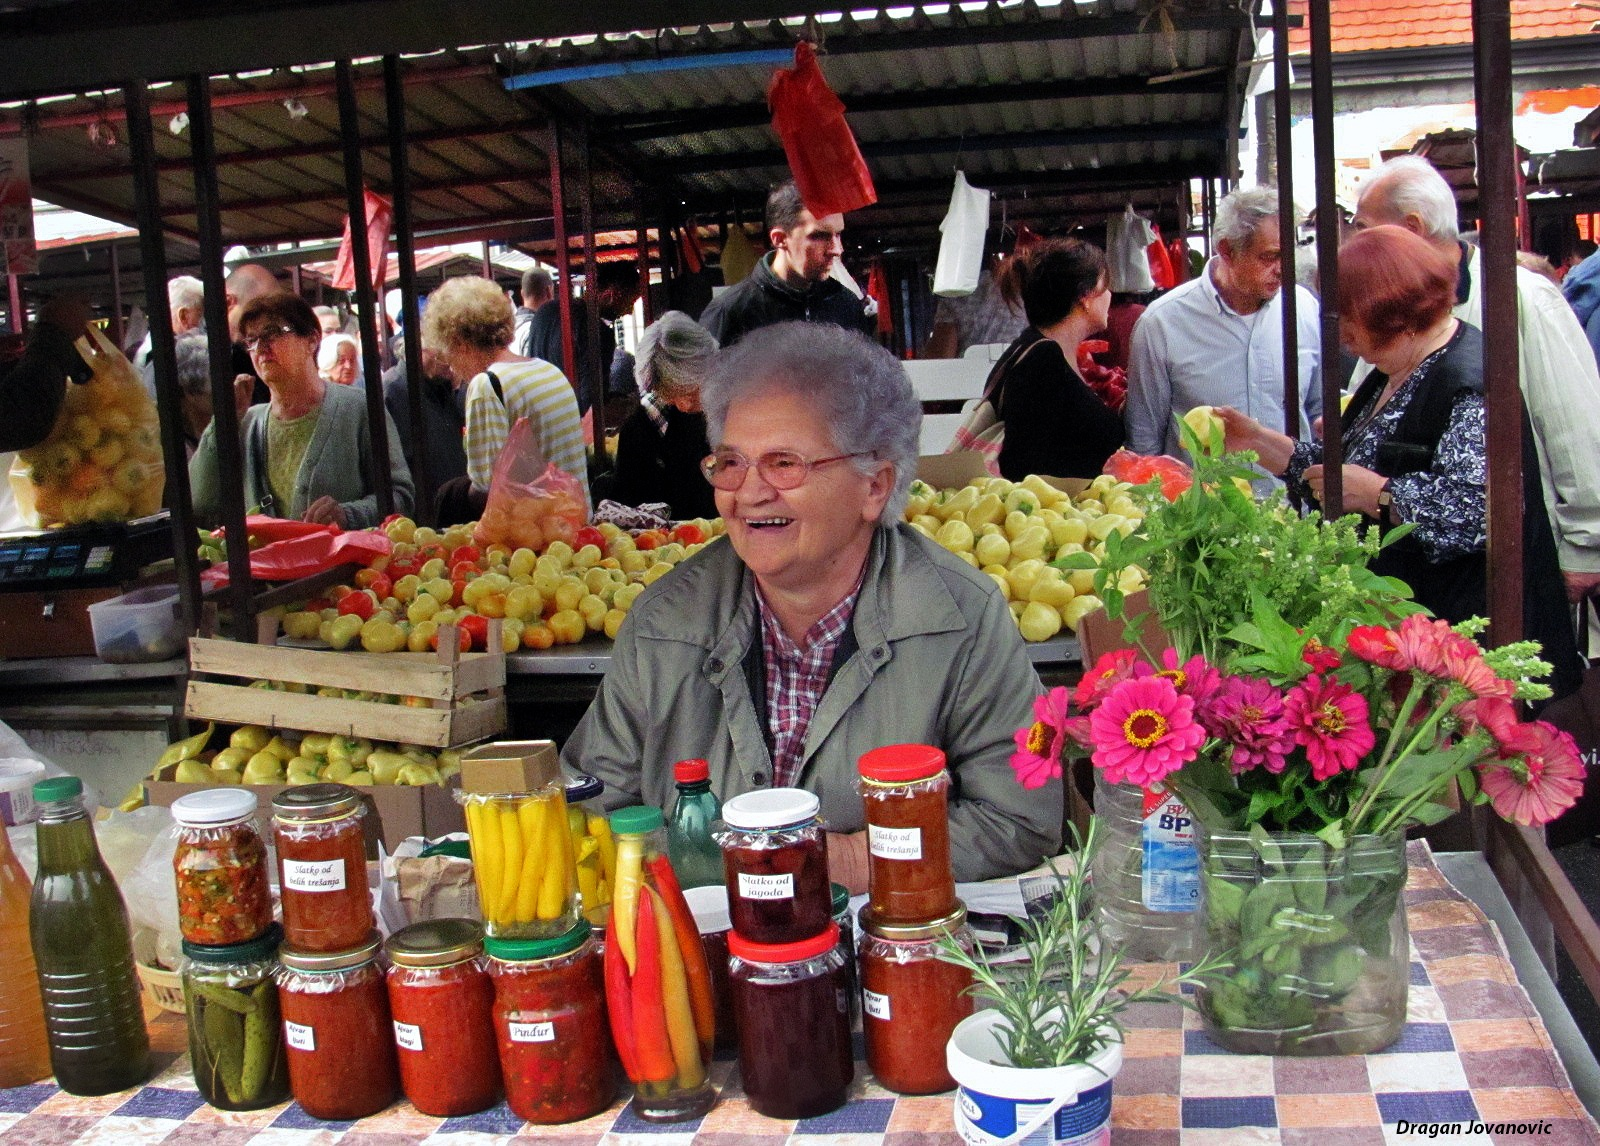 OLD WOMEN WITH HEALLTY FOOD by espanol1950